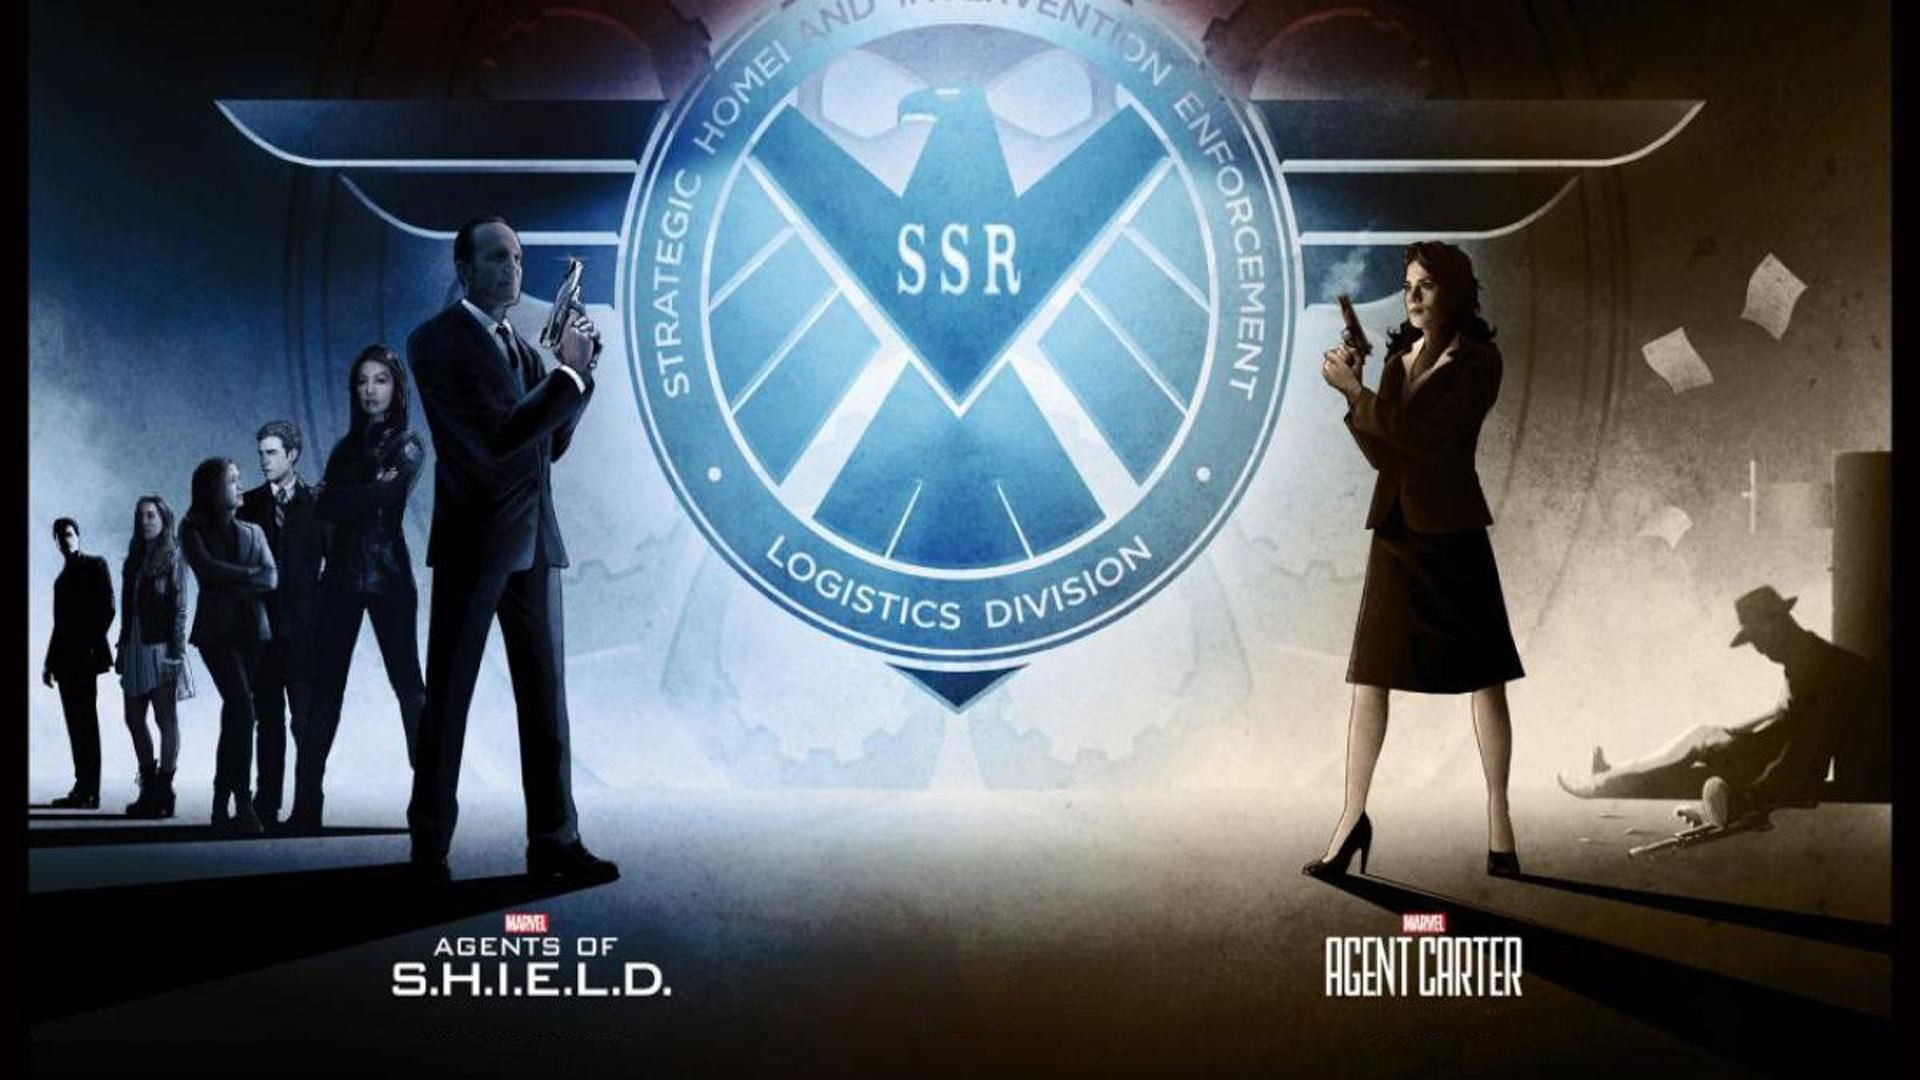 1920x1080 I found an image in one of the news pieces about Agents of S.H.I.E.L.D and  Agent Carter getting renewed and decided to make it a wallpaper.